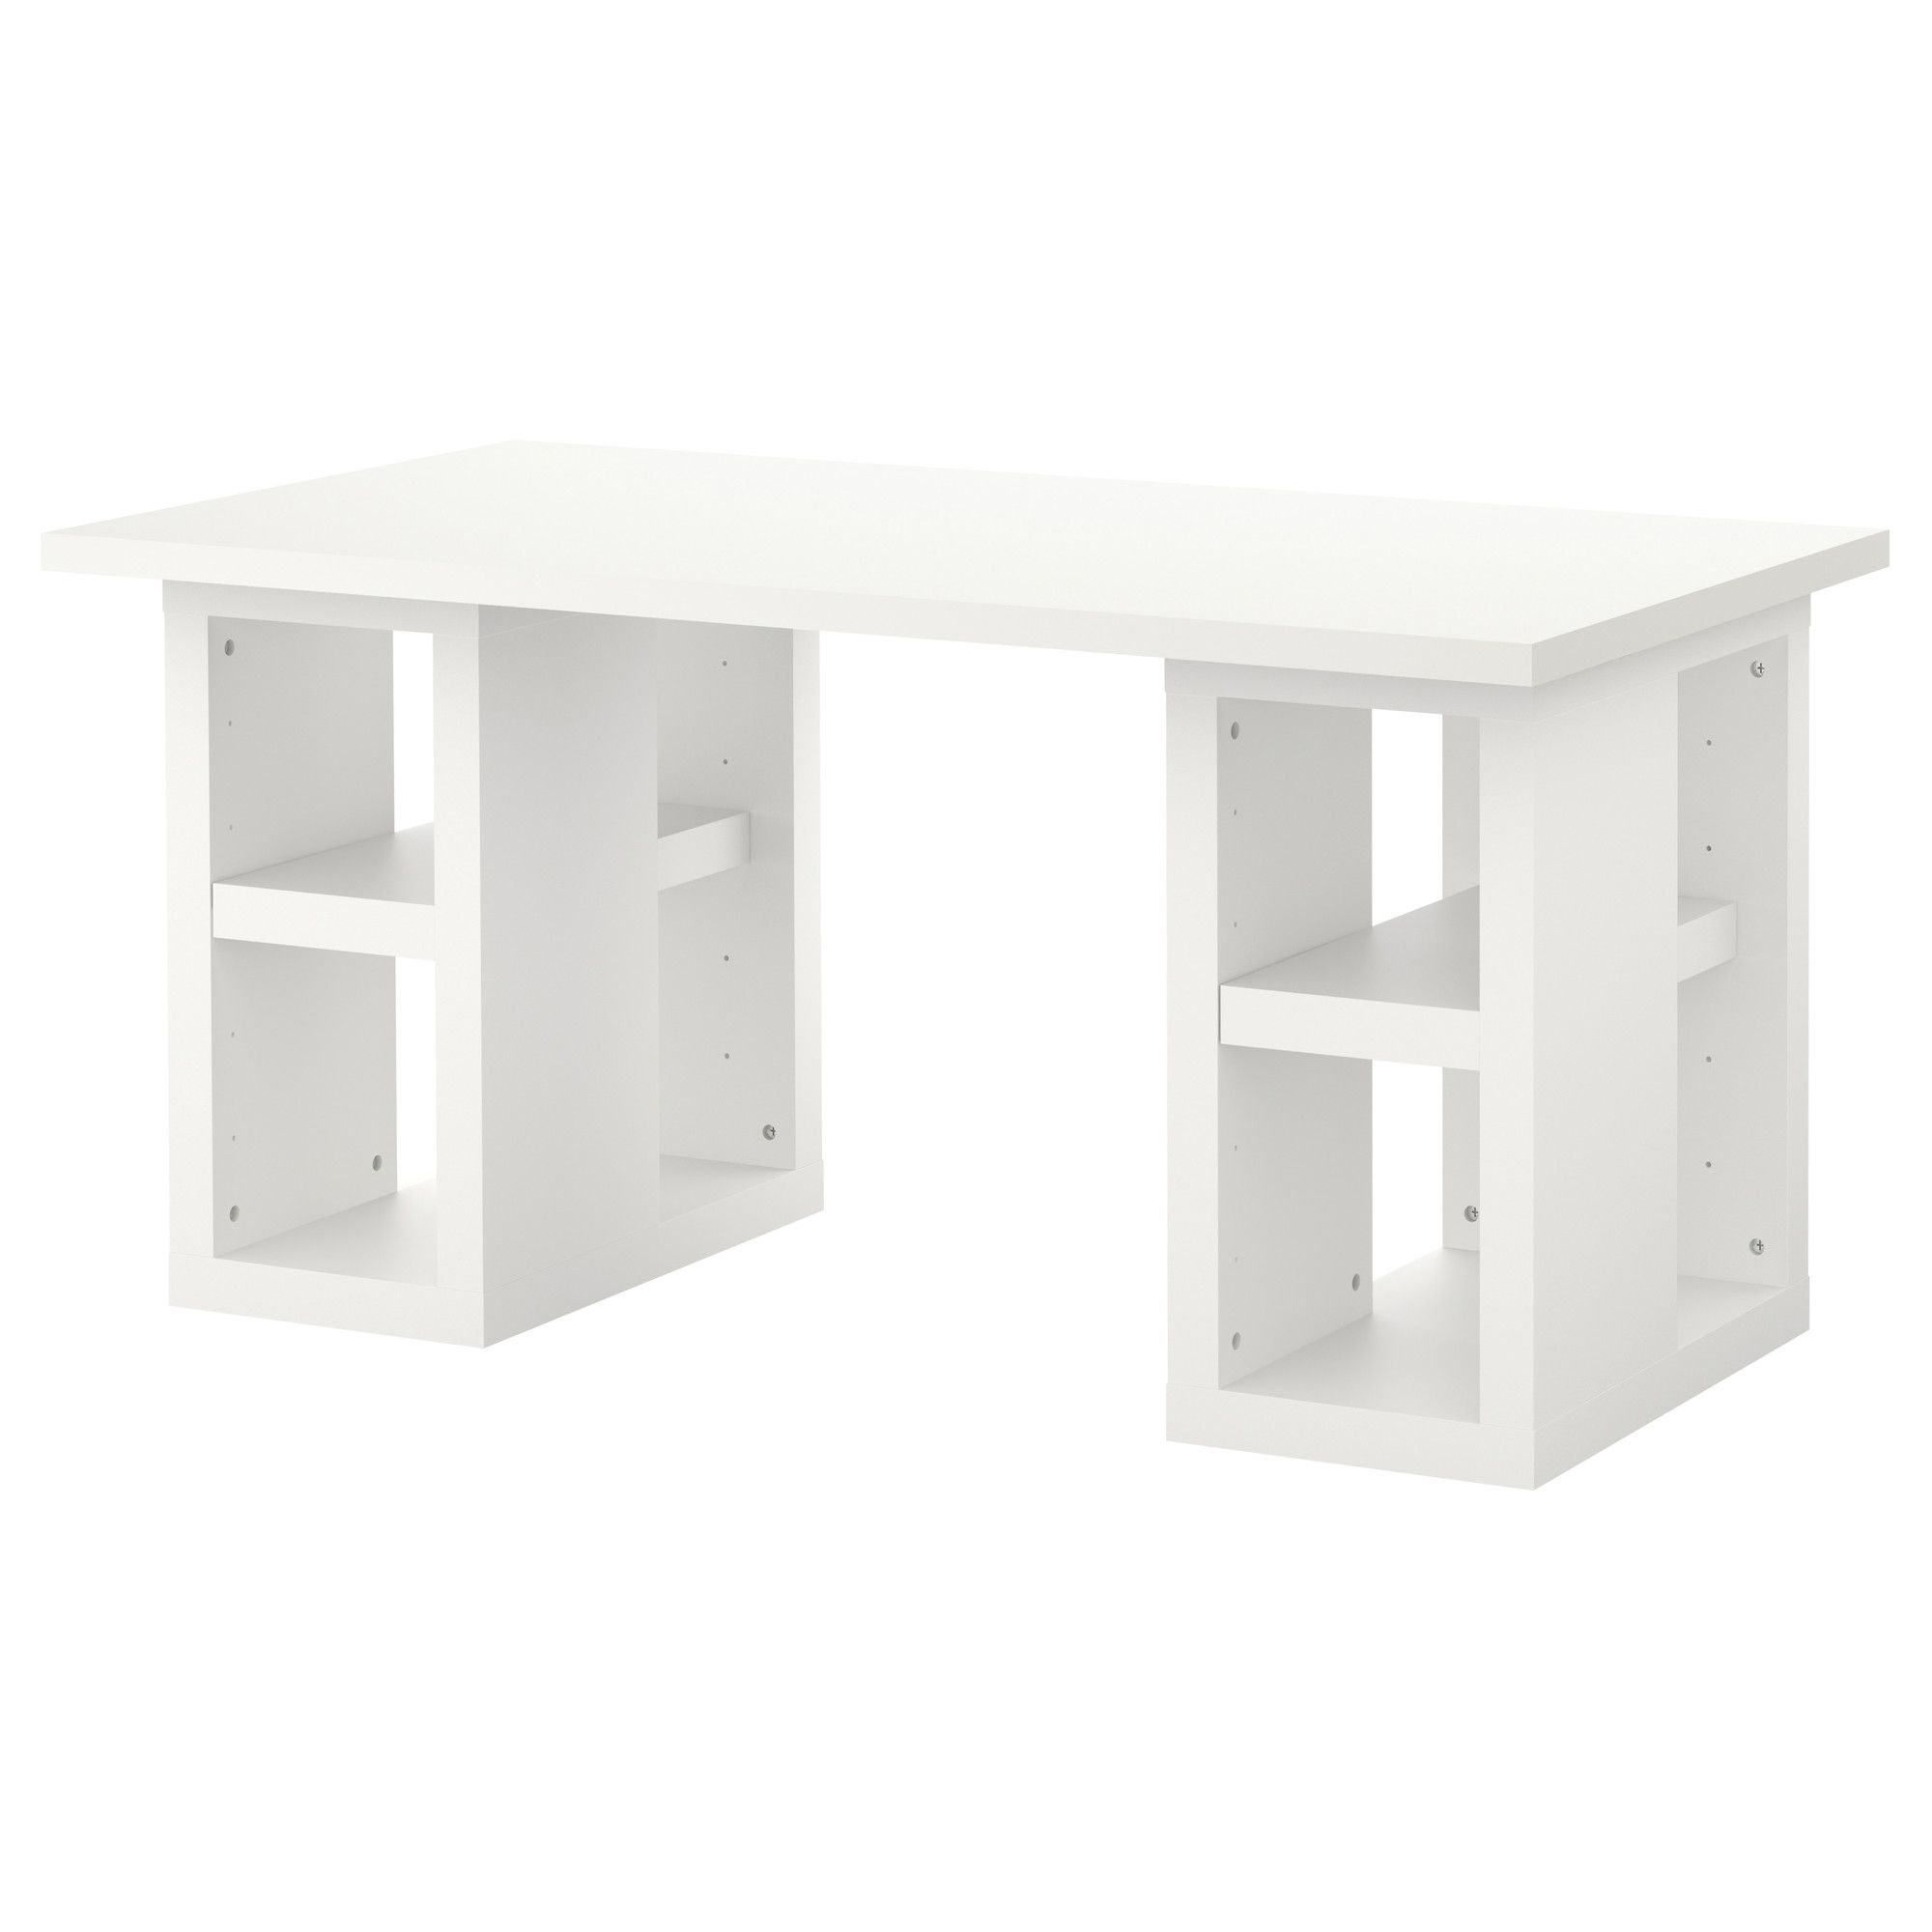 Vika amon vika annefors table white ikea table in my must have office picture back office - Table bureau ikea ...